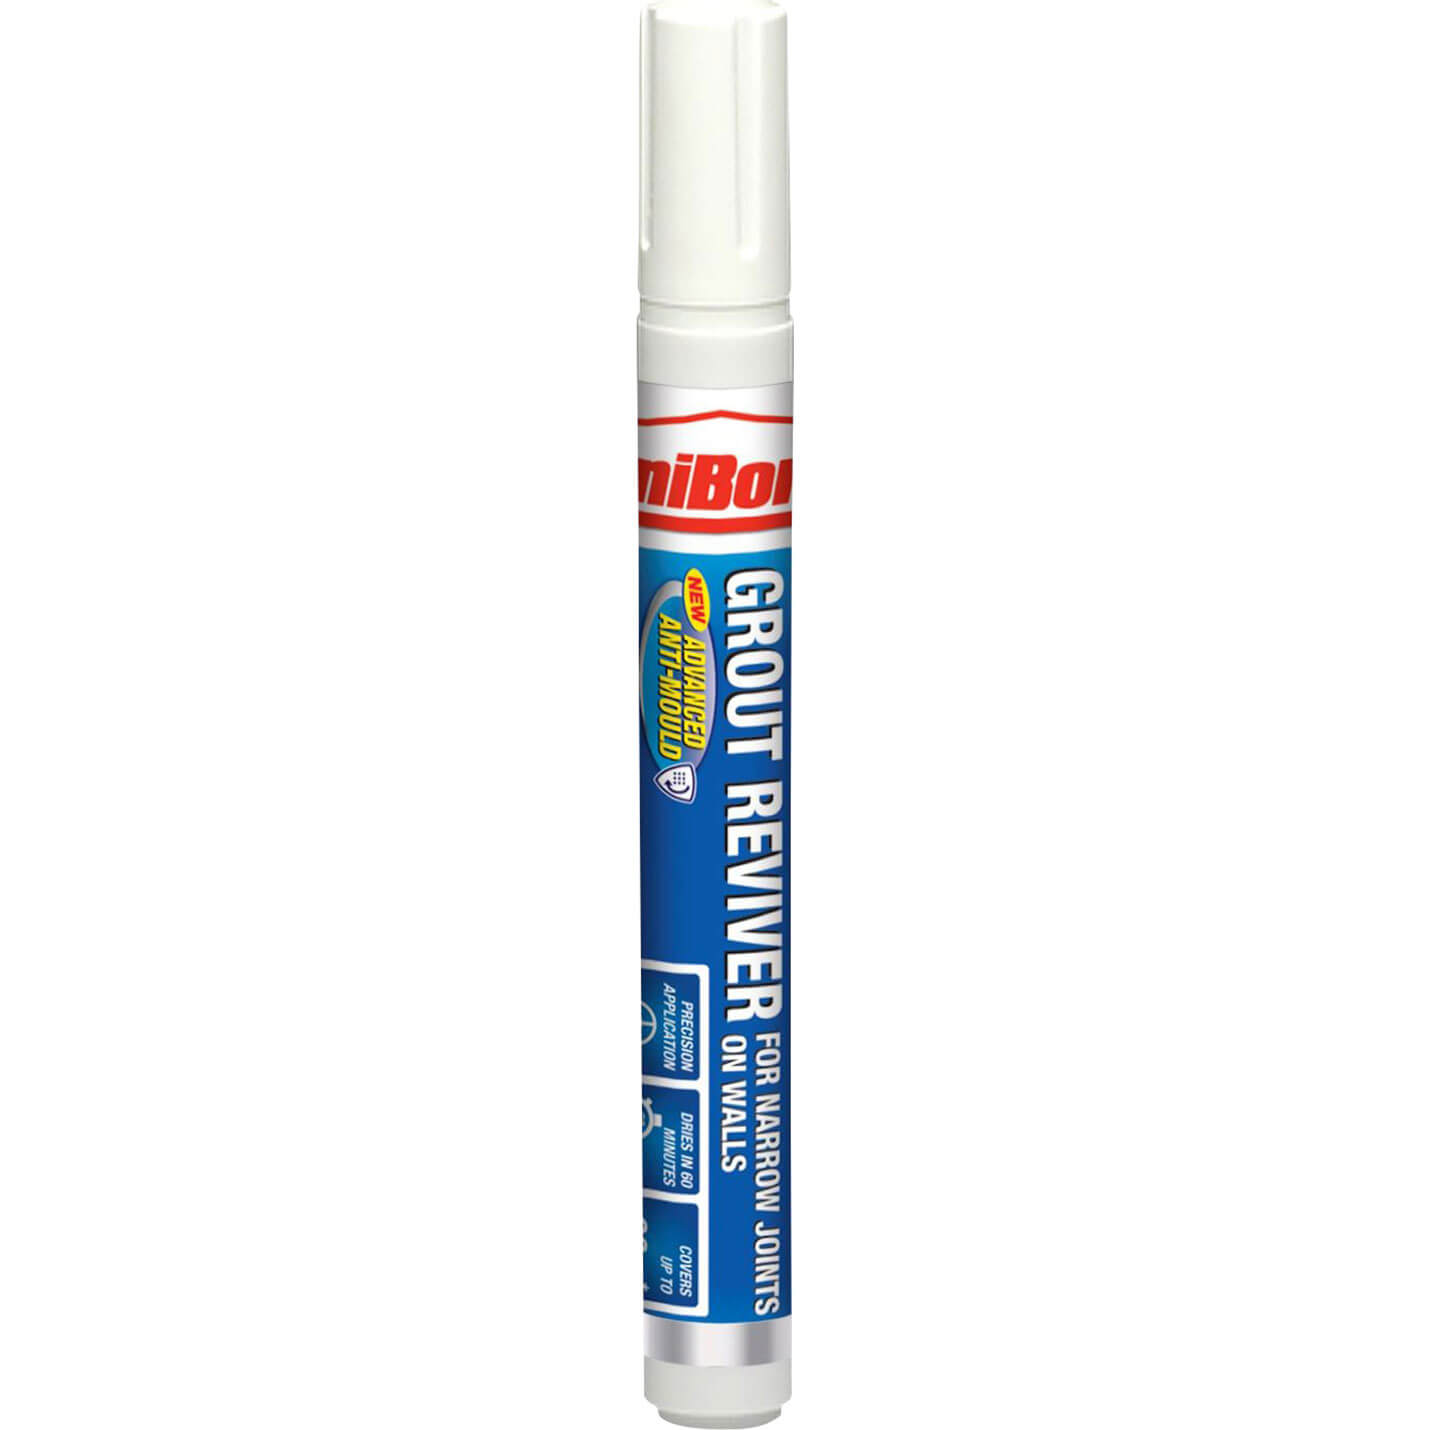 Unibond Tile Grout Reviver Pen